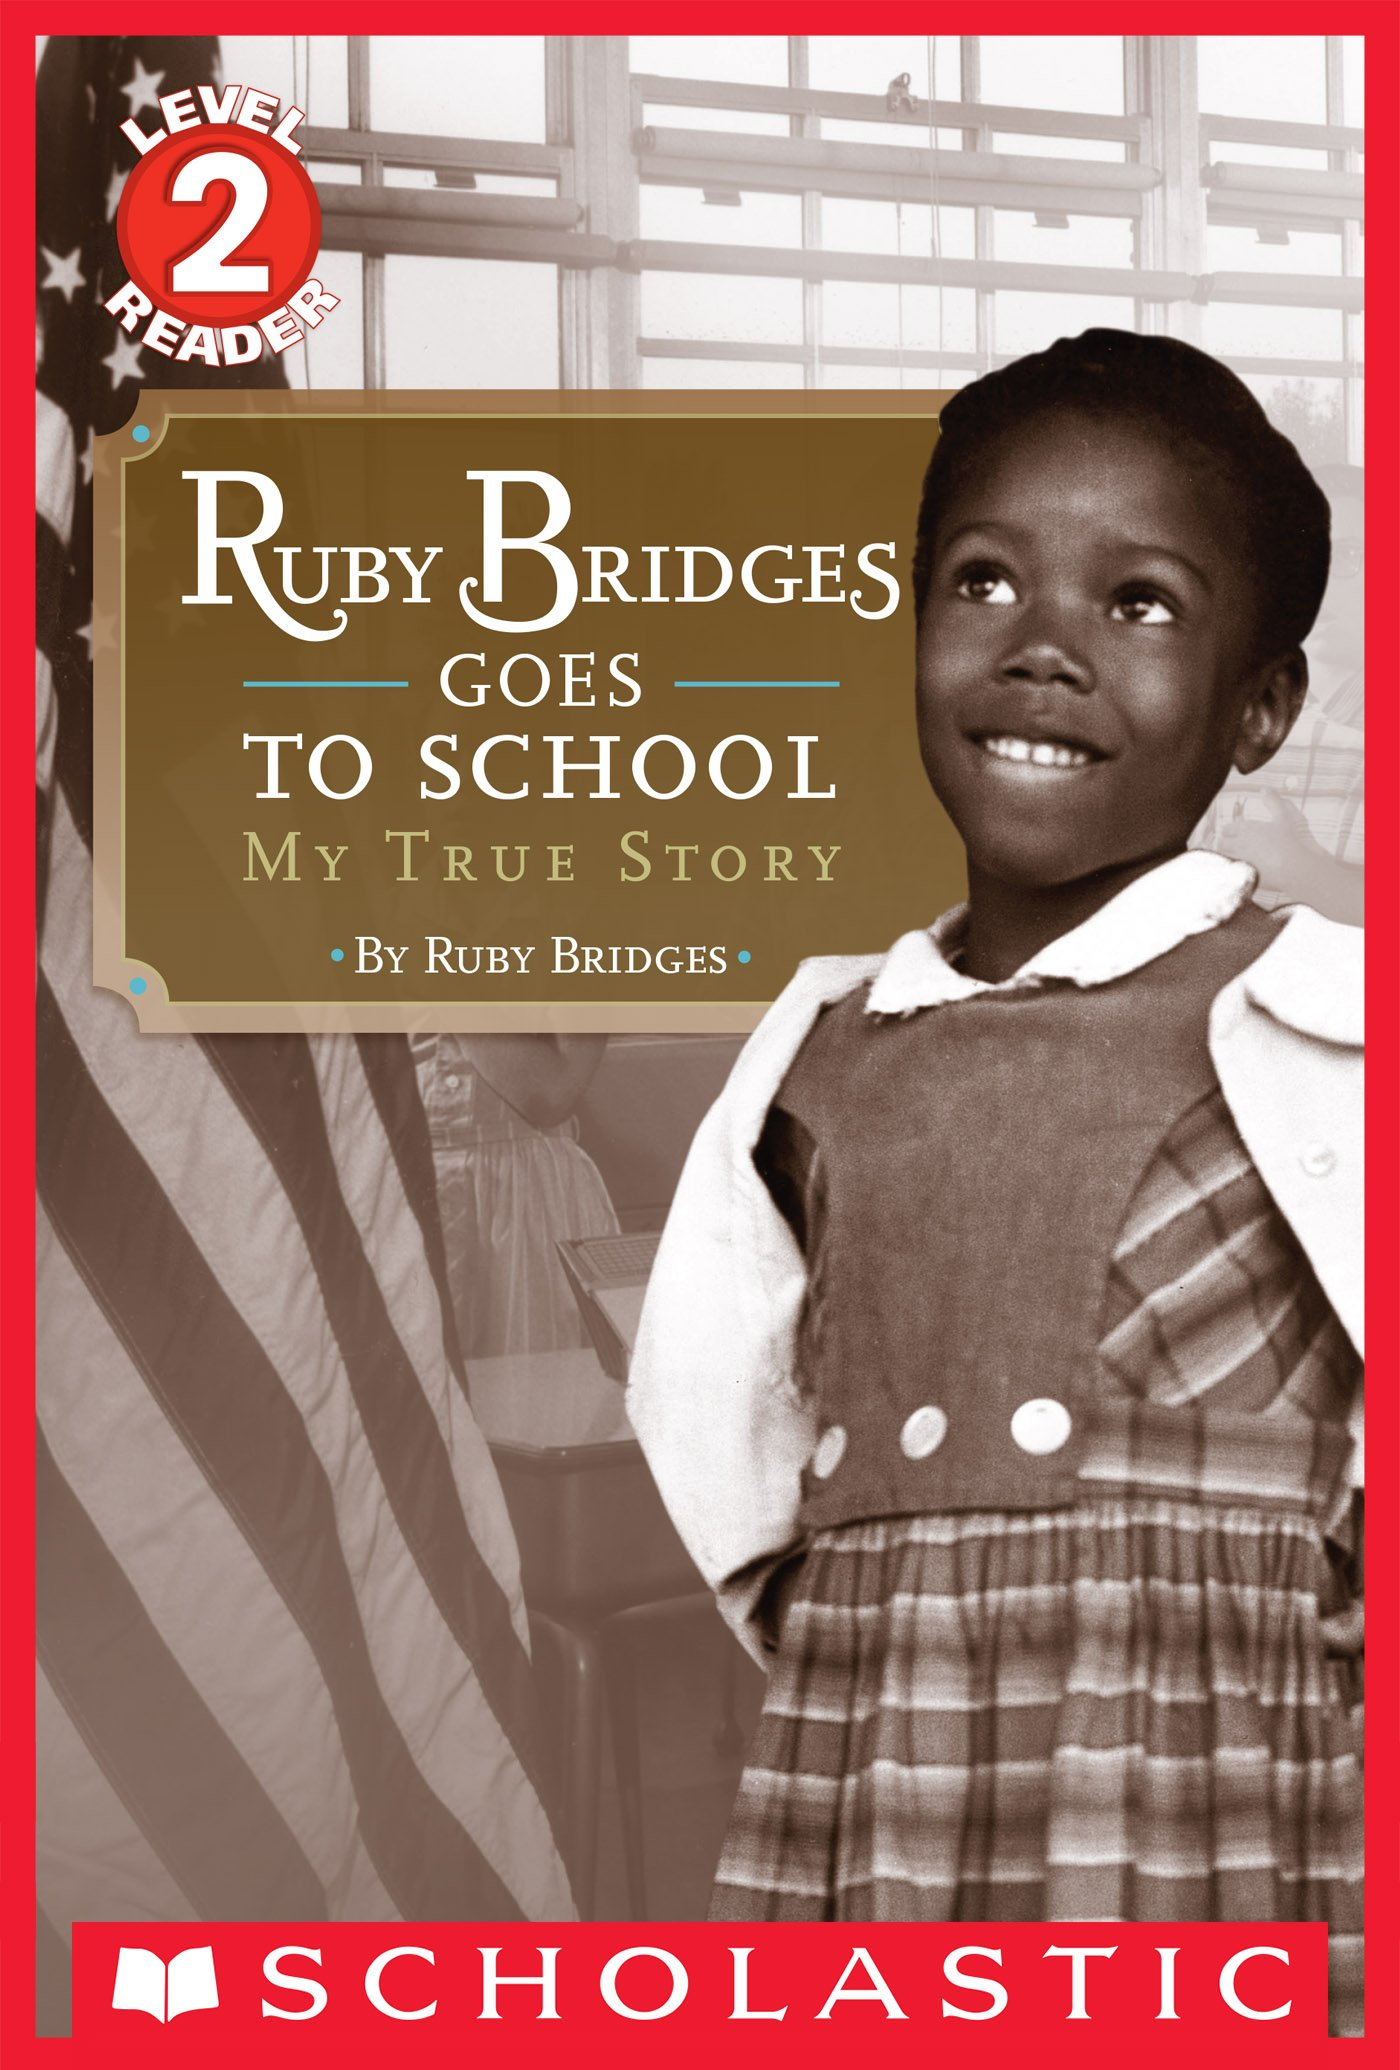 ruby bridges Ruby bridges is best known for being the first black child to attend an all-white school she didn't stop there, though ruby went on to work actively in the civil rights movement, and her contribution to society lives on.